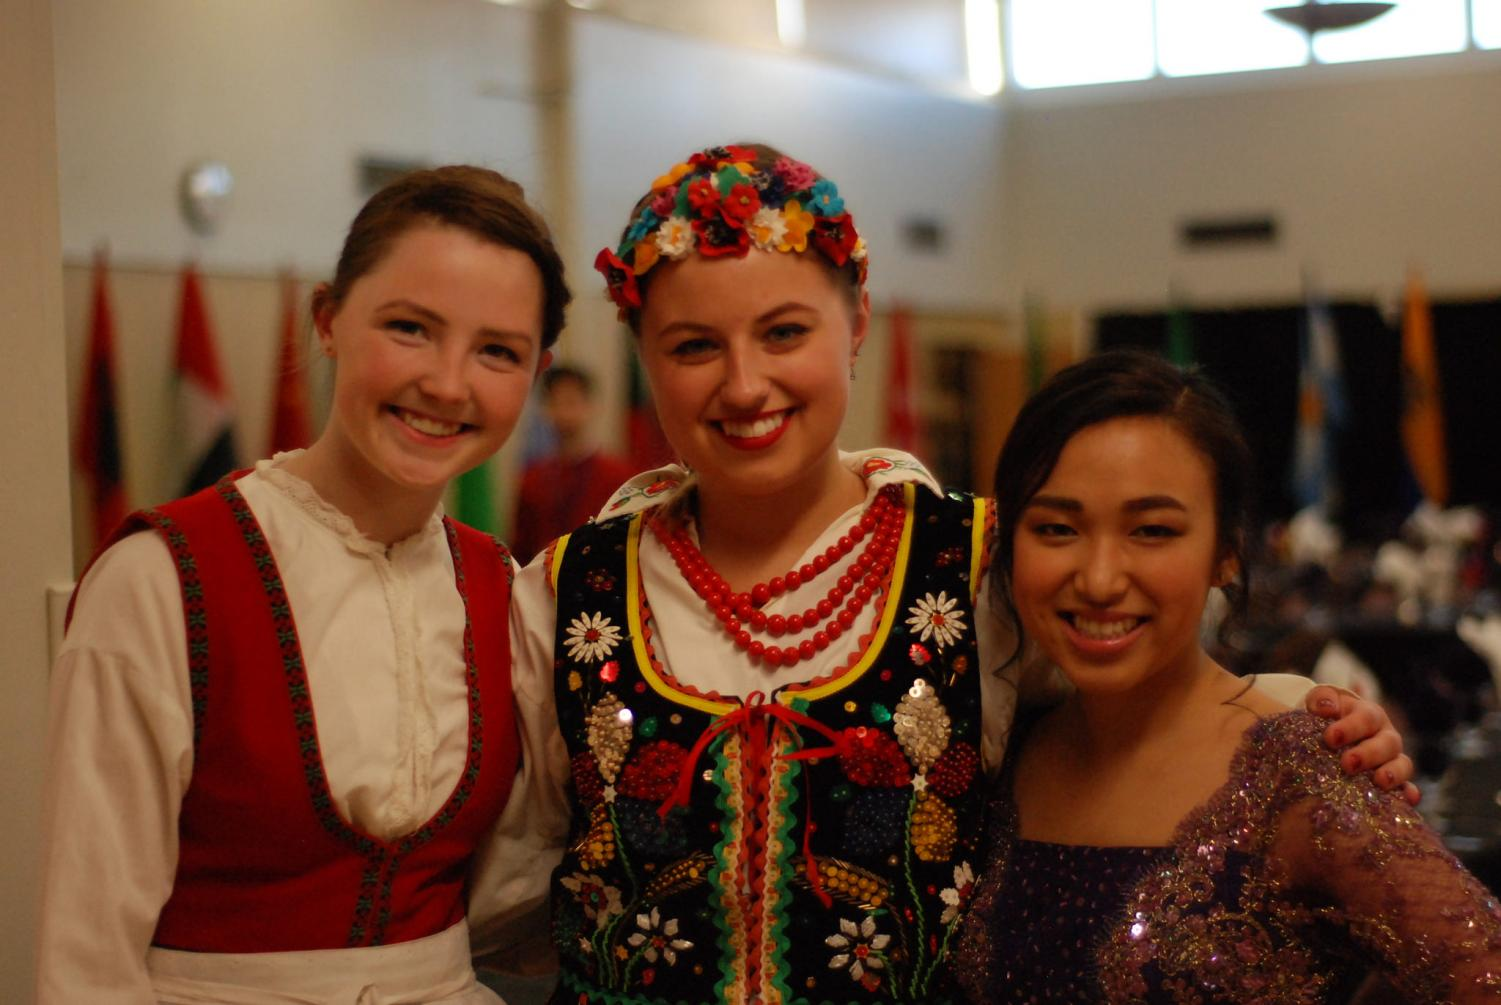 Left to right: first-year Anna Millerhagen, sophomore Nina Horbik and sophomore Nutsovanary Puy in traditional dress at Winona State University's 31st annual International Dinner on Saturday, April 7. Hosted by the International Club in East Hall, the dinner is a celebration for on-campus international diversity with cultural foods, performances and prizes. Tickets are open to students and community members to see Winona State students showcase their different cultures.